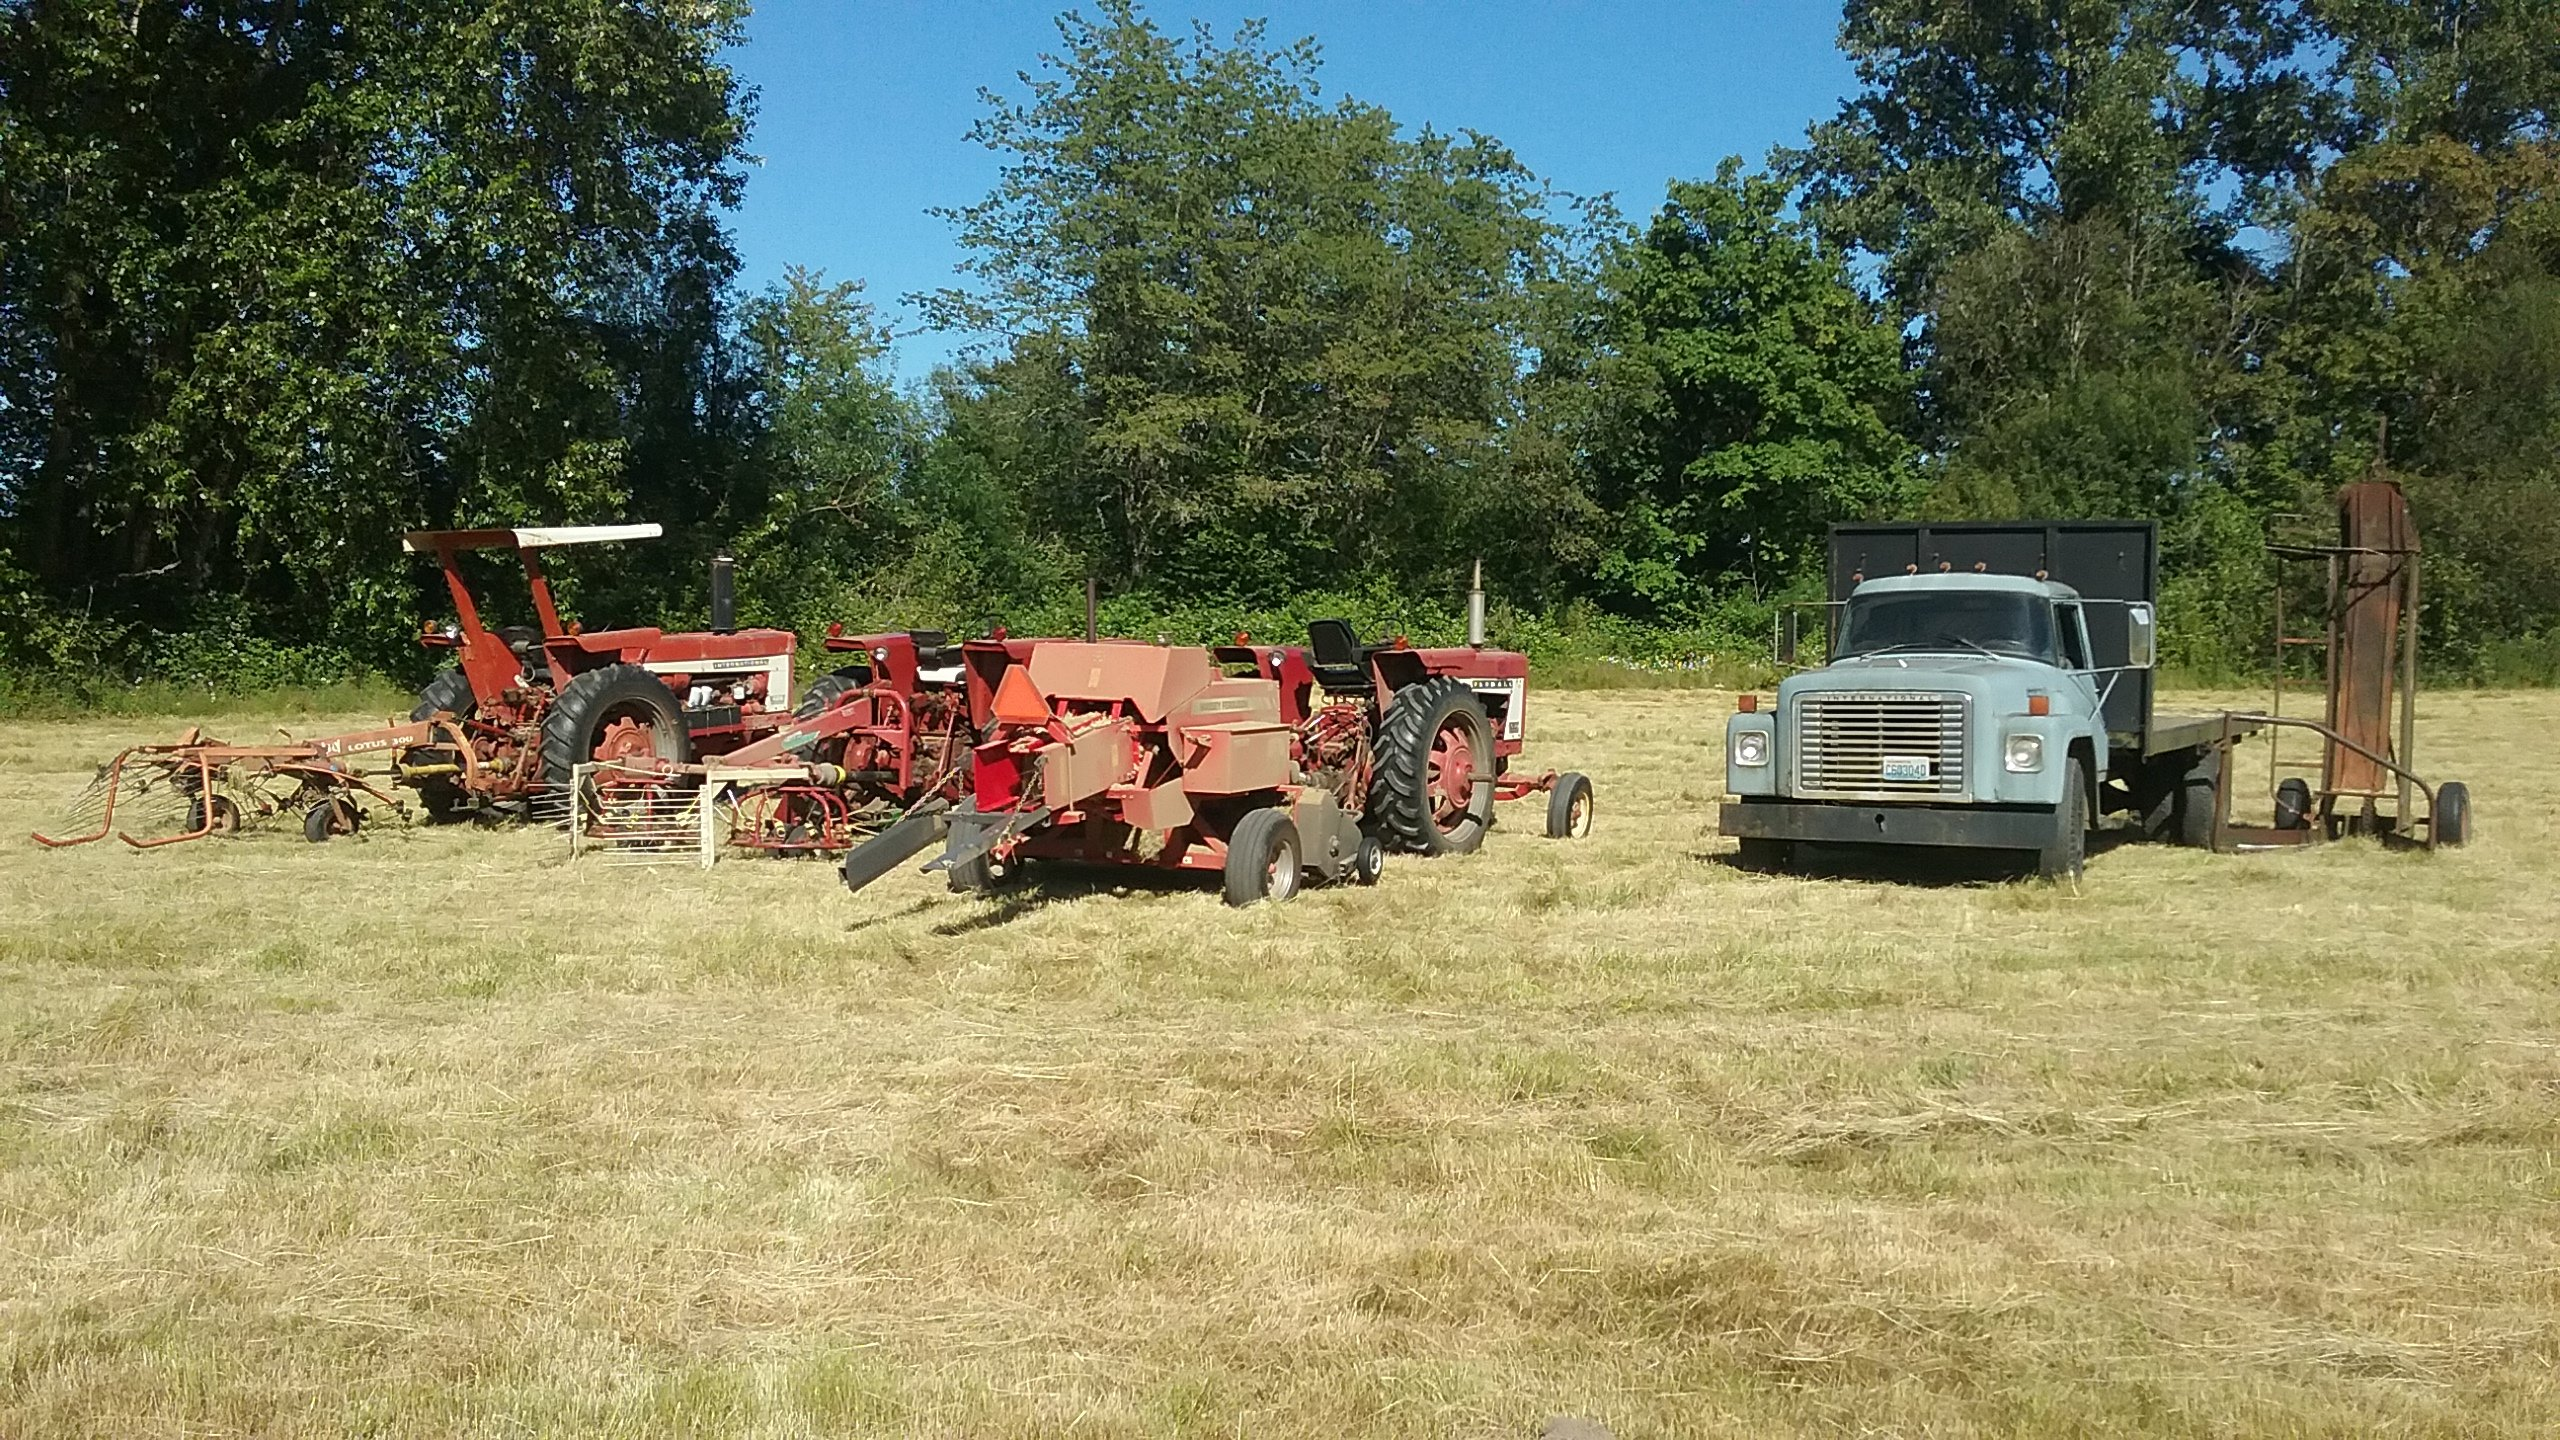 Best hay tractor? - Coffee Shop - Red Power Magazine Community